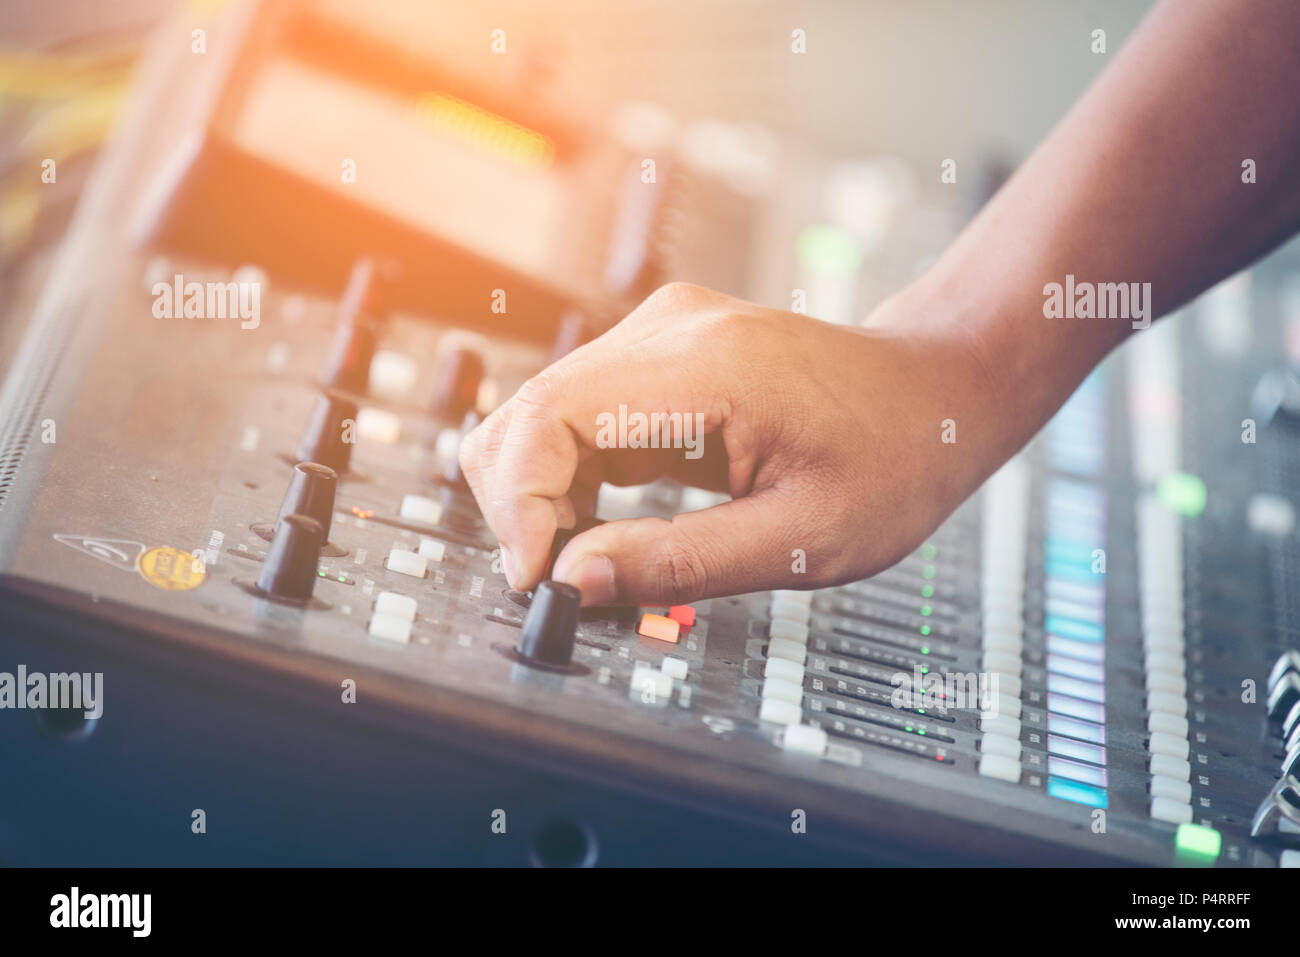 professional stage sound mixer closeup at sound engineer hand using audio mix slider working during concert performance Stock Photo